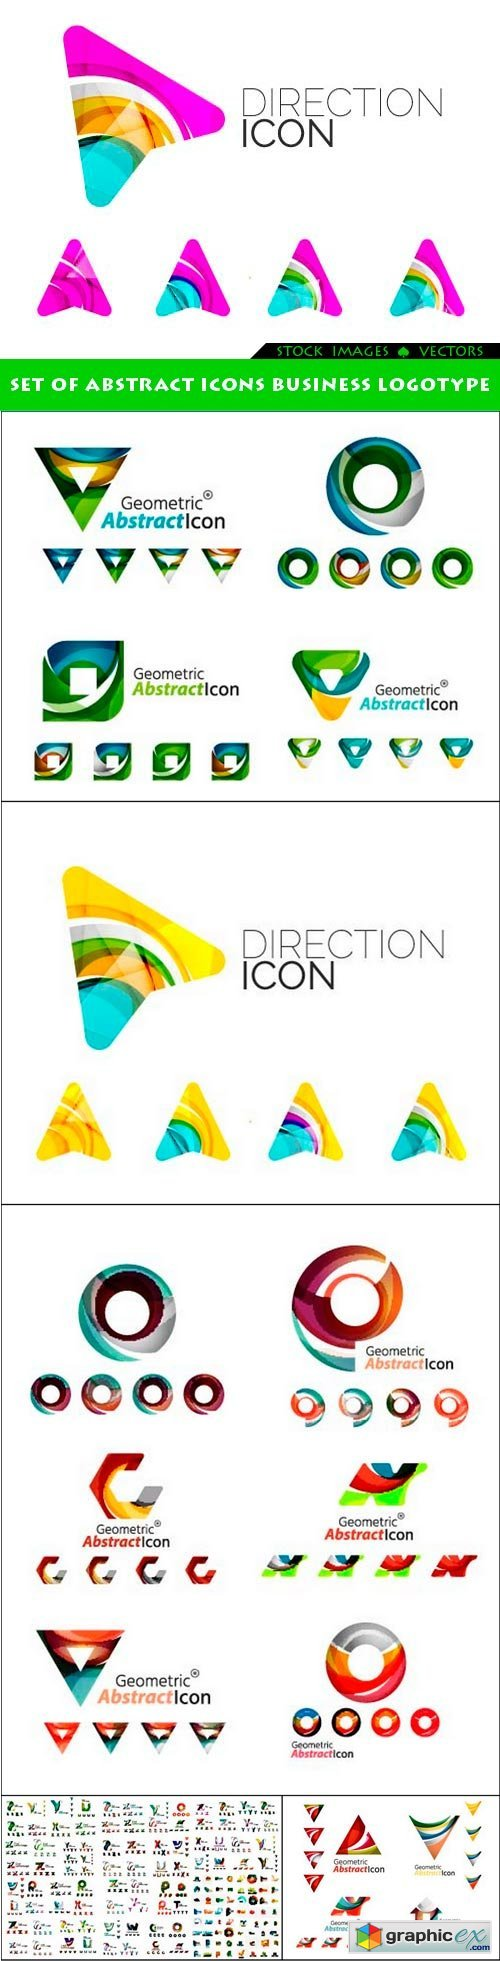 Set of abstract icons business logotype 6x EPS